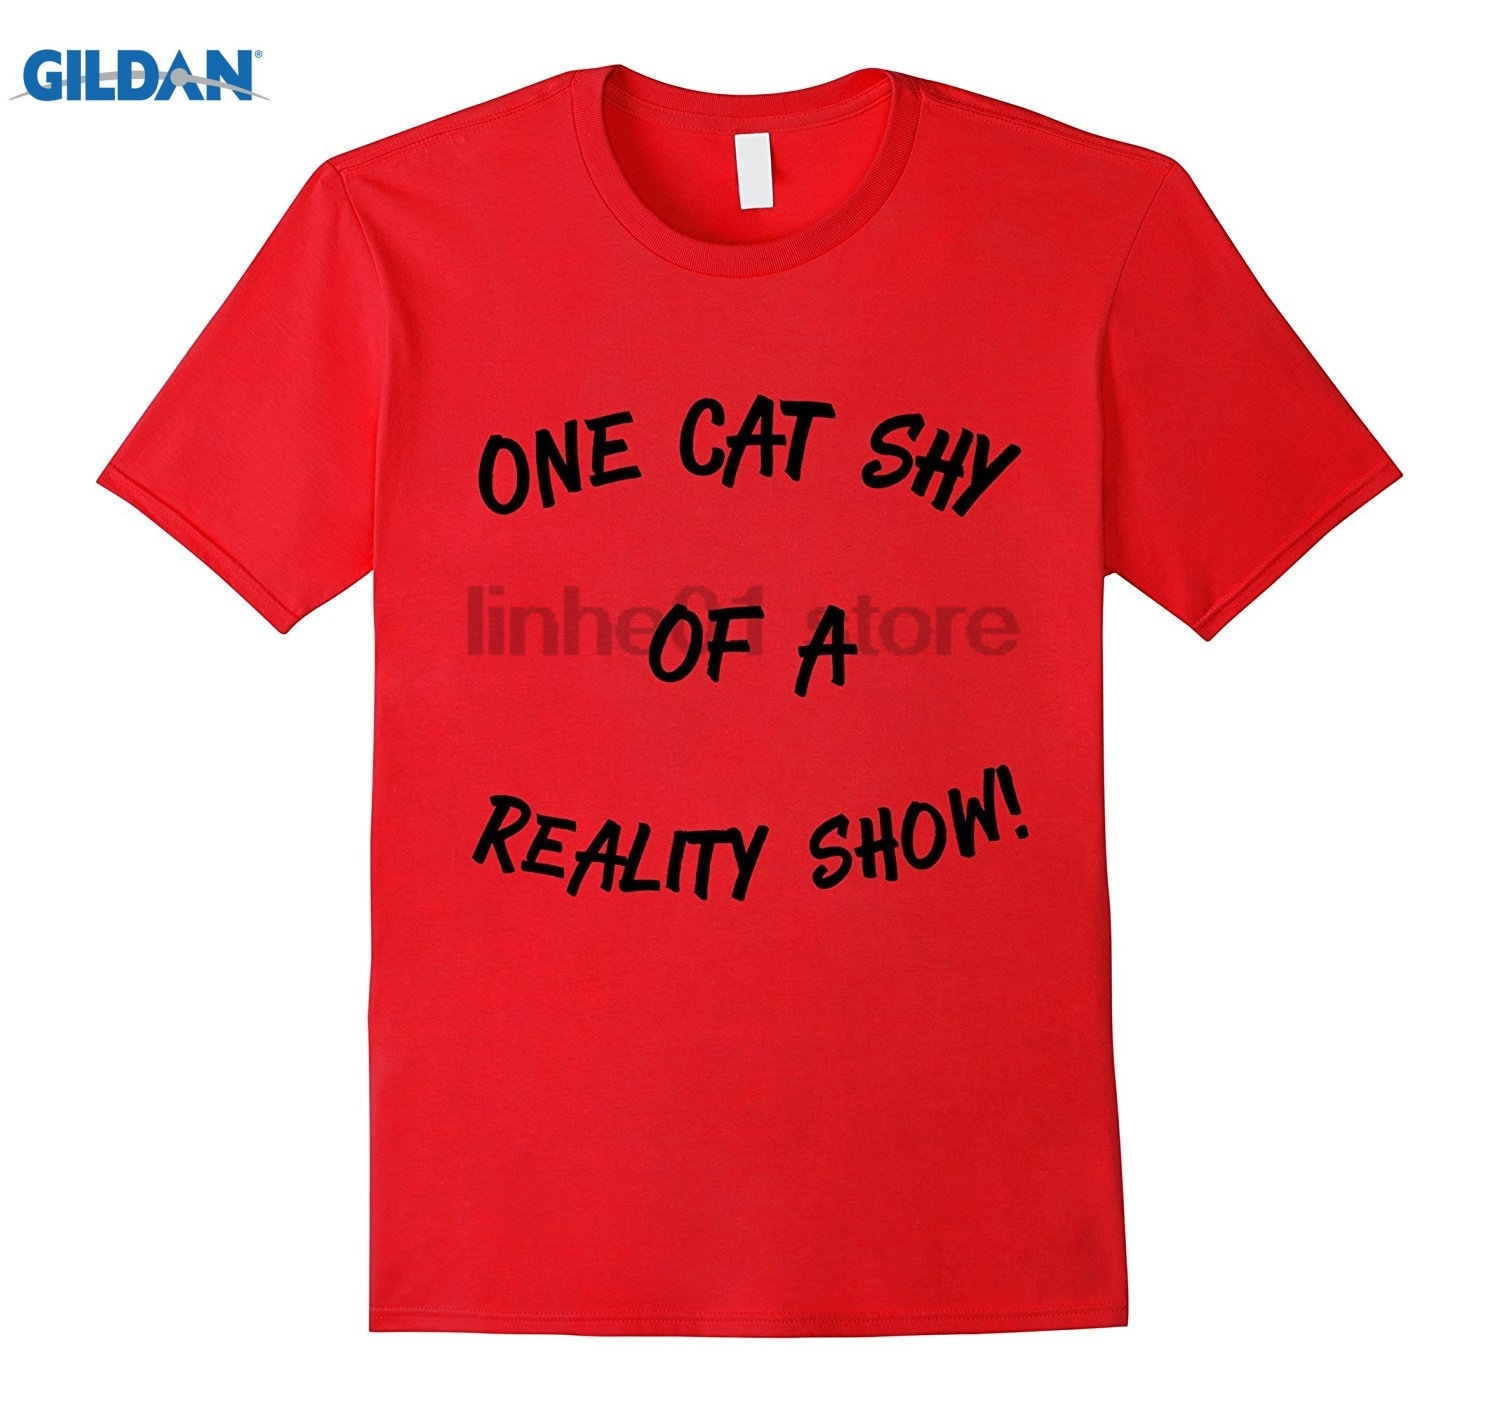 GILDAN One Cat Shy of a Reality Show! sunglasses women T-shirt